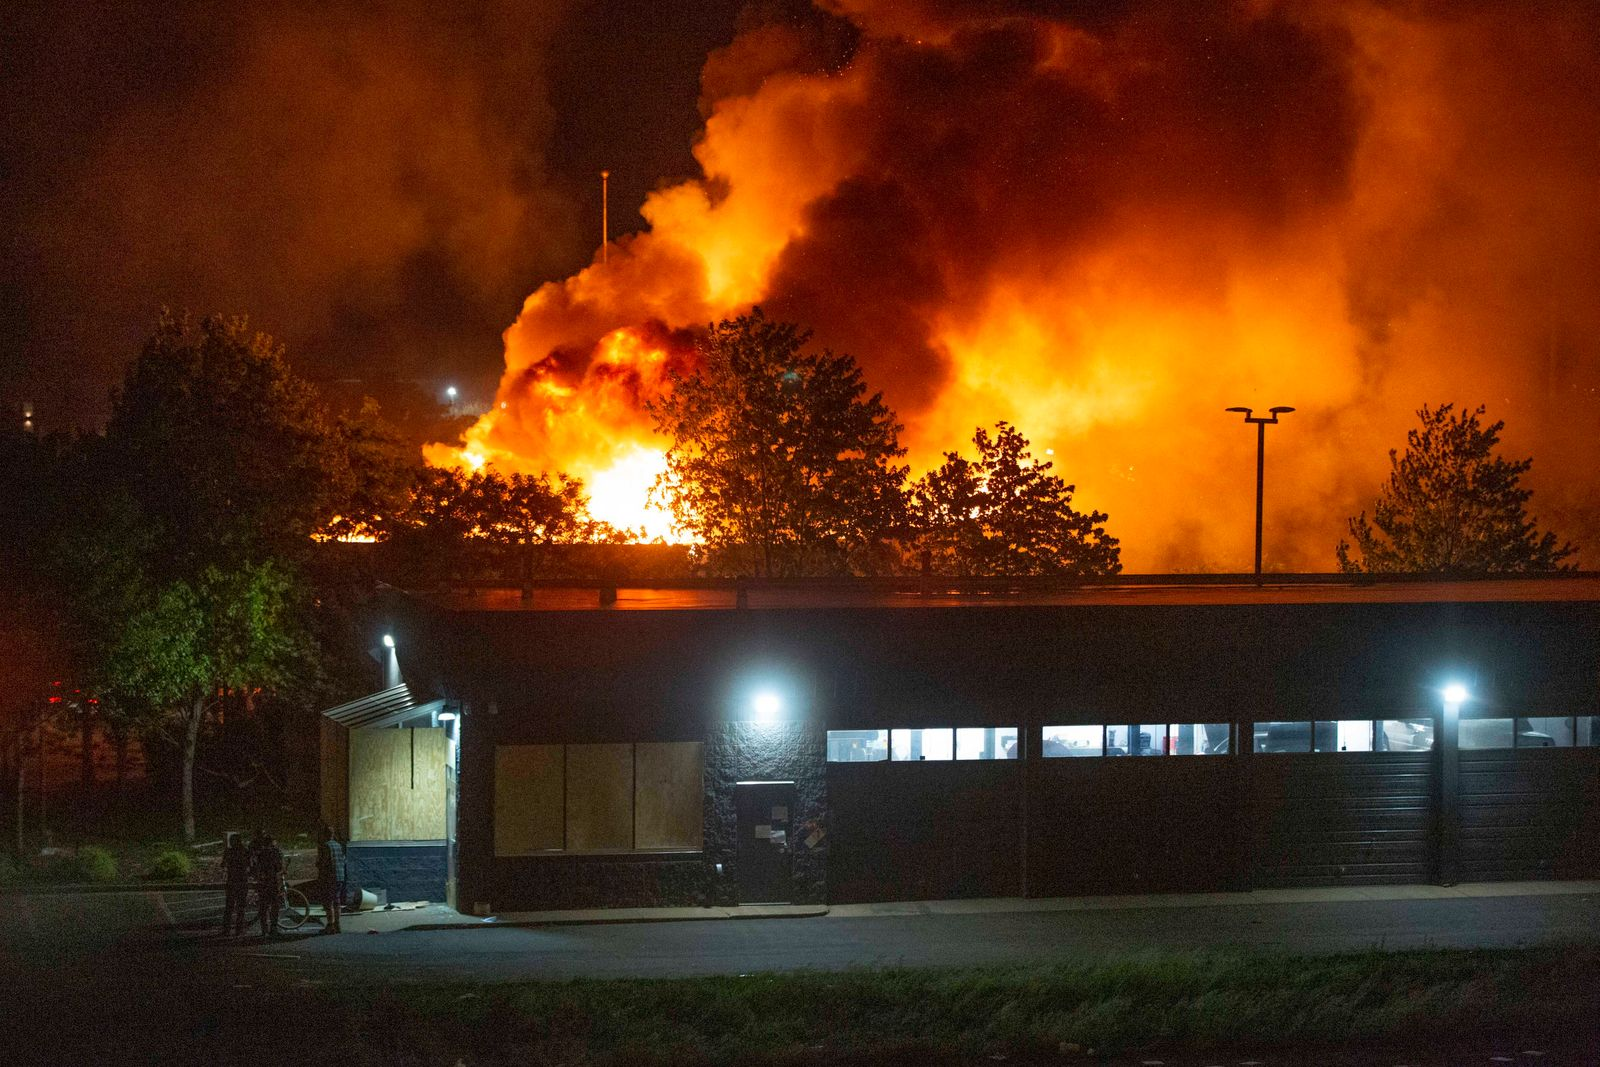 May 29, 202, Minneapolis, Minnesota, USA: A fire burns in the distance while riots and looting break out across the cit